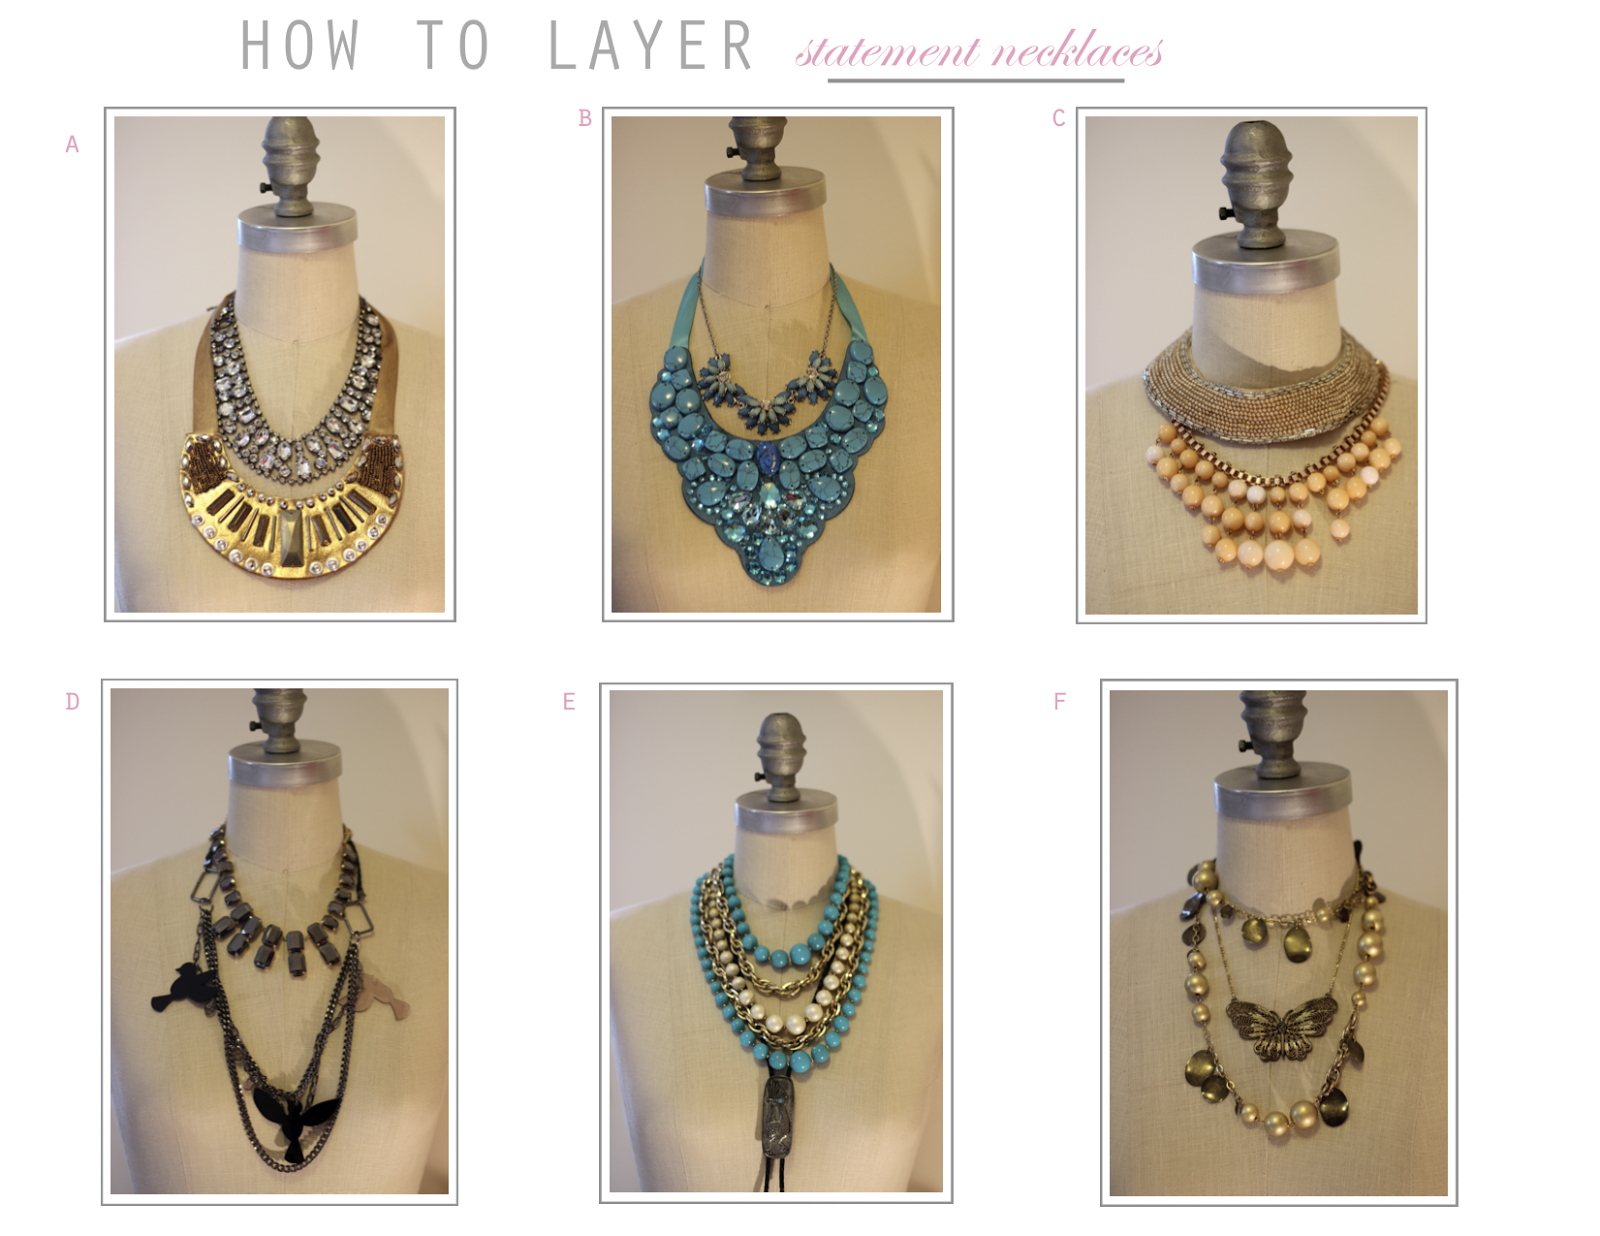 how to pack statement necklaces